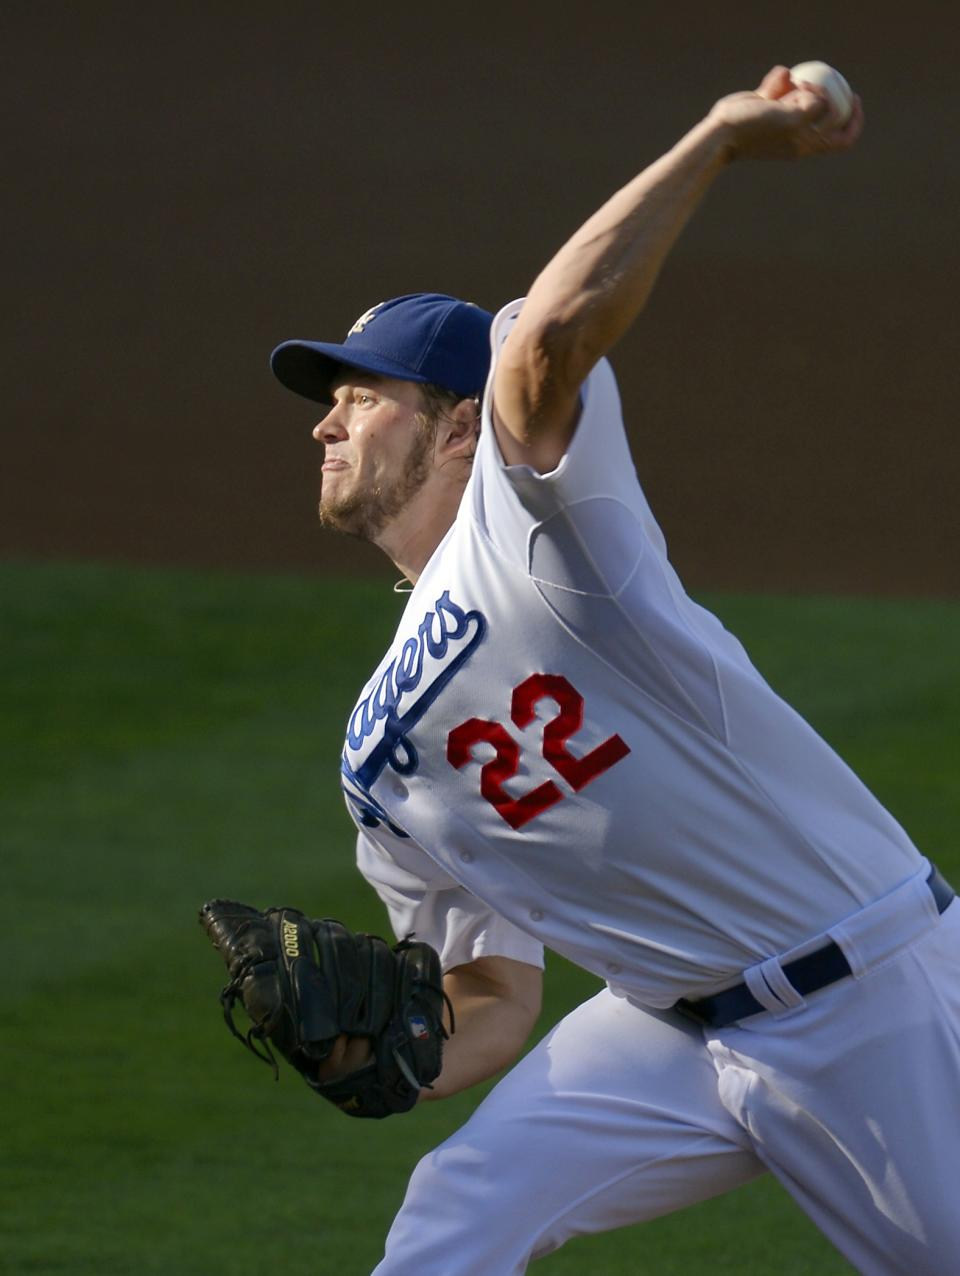 Los Angeles Dodgers starting pitcher Clayton Kershaw throws to a San Francisco Giants batter during the first inning of a baseball game Wednesday, Oct. 3, 2012, in Los Angeles. (AP Photo/Mark J. Terrill)